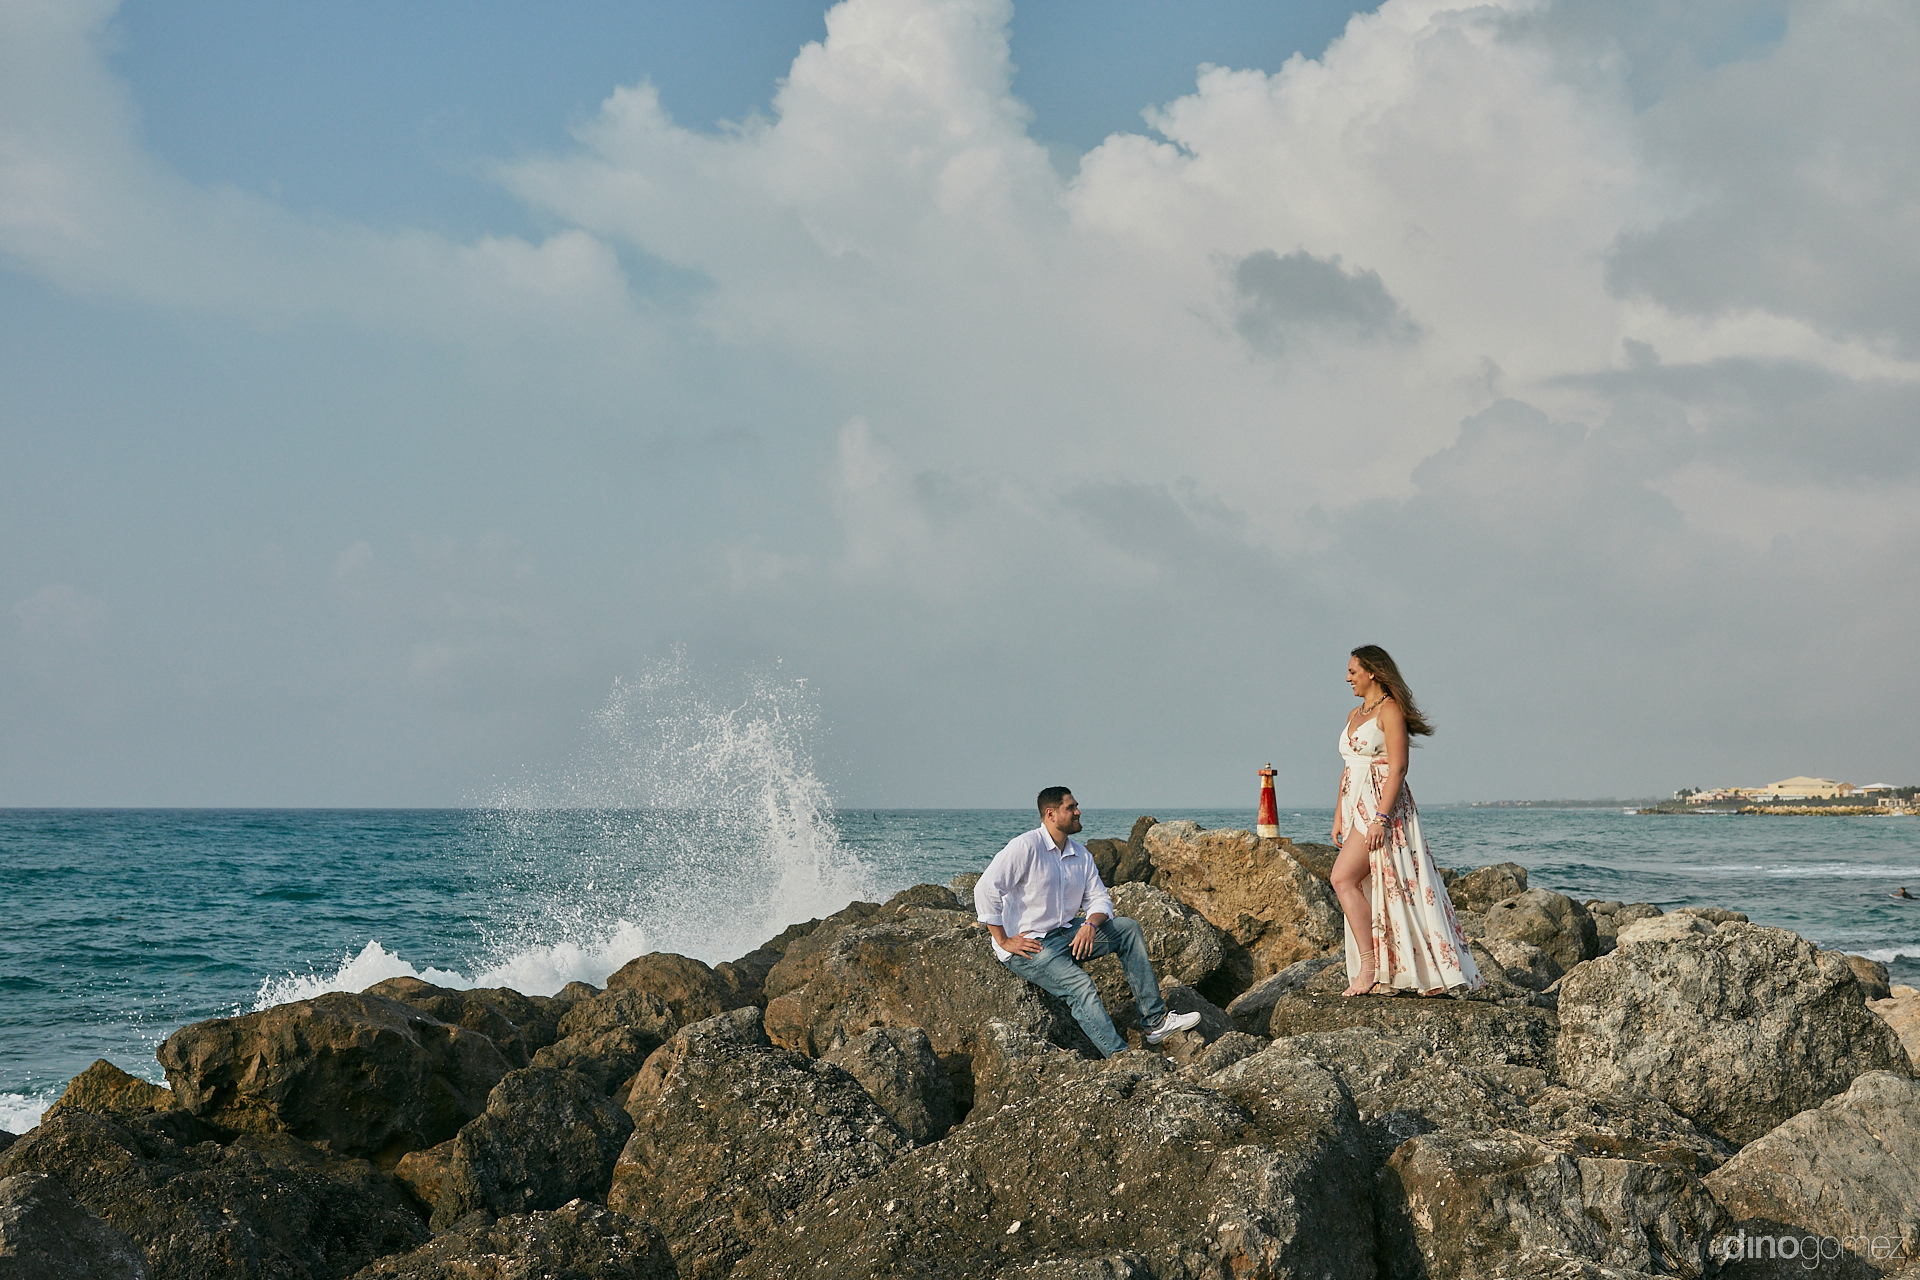 Highend Tulum Wedding Photographer - Pdc - C&D